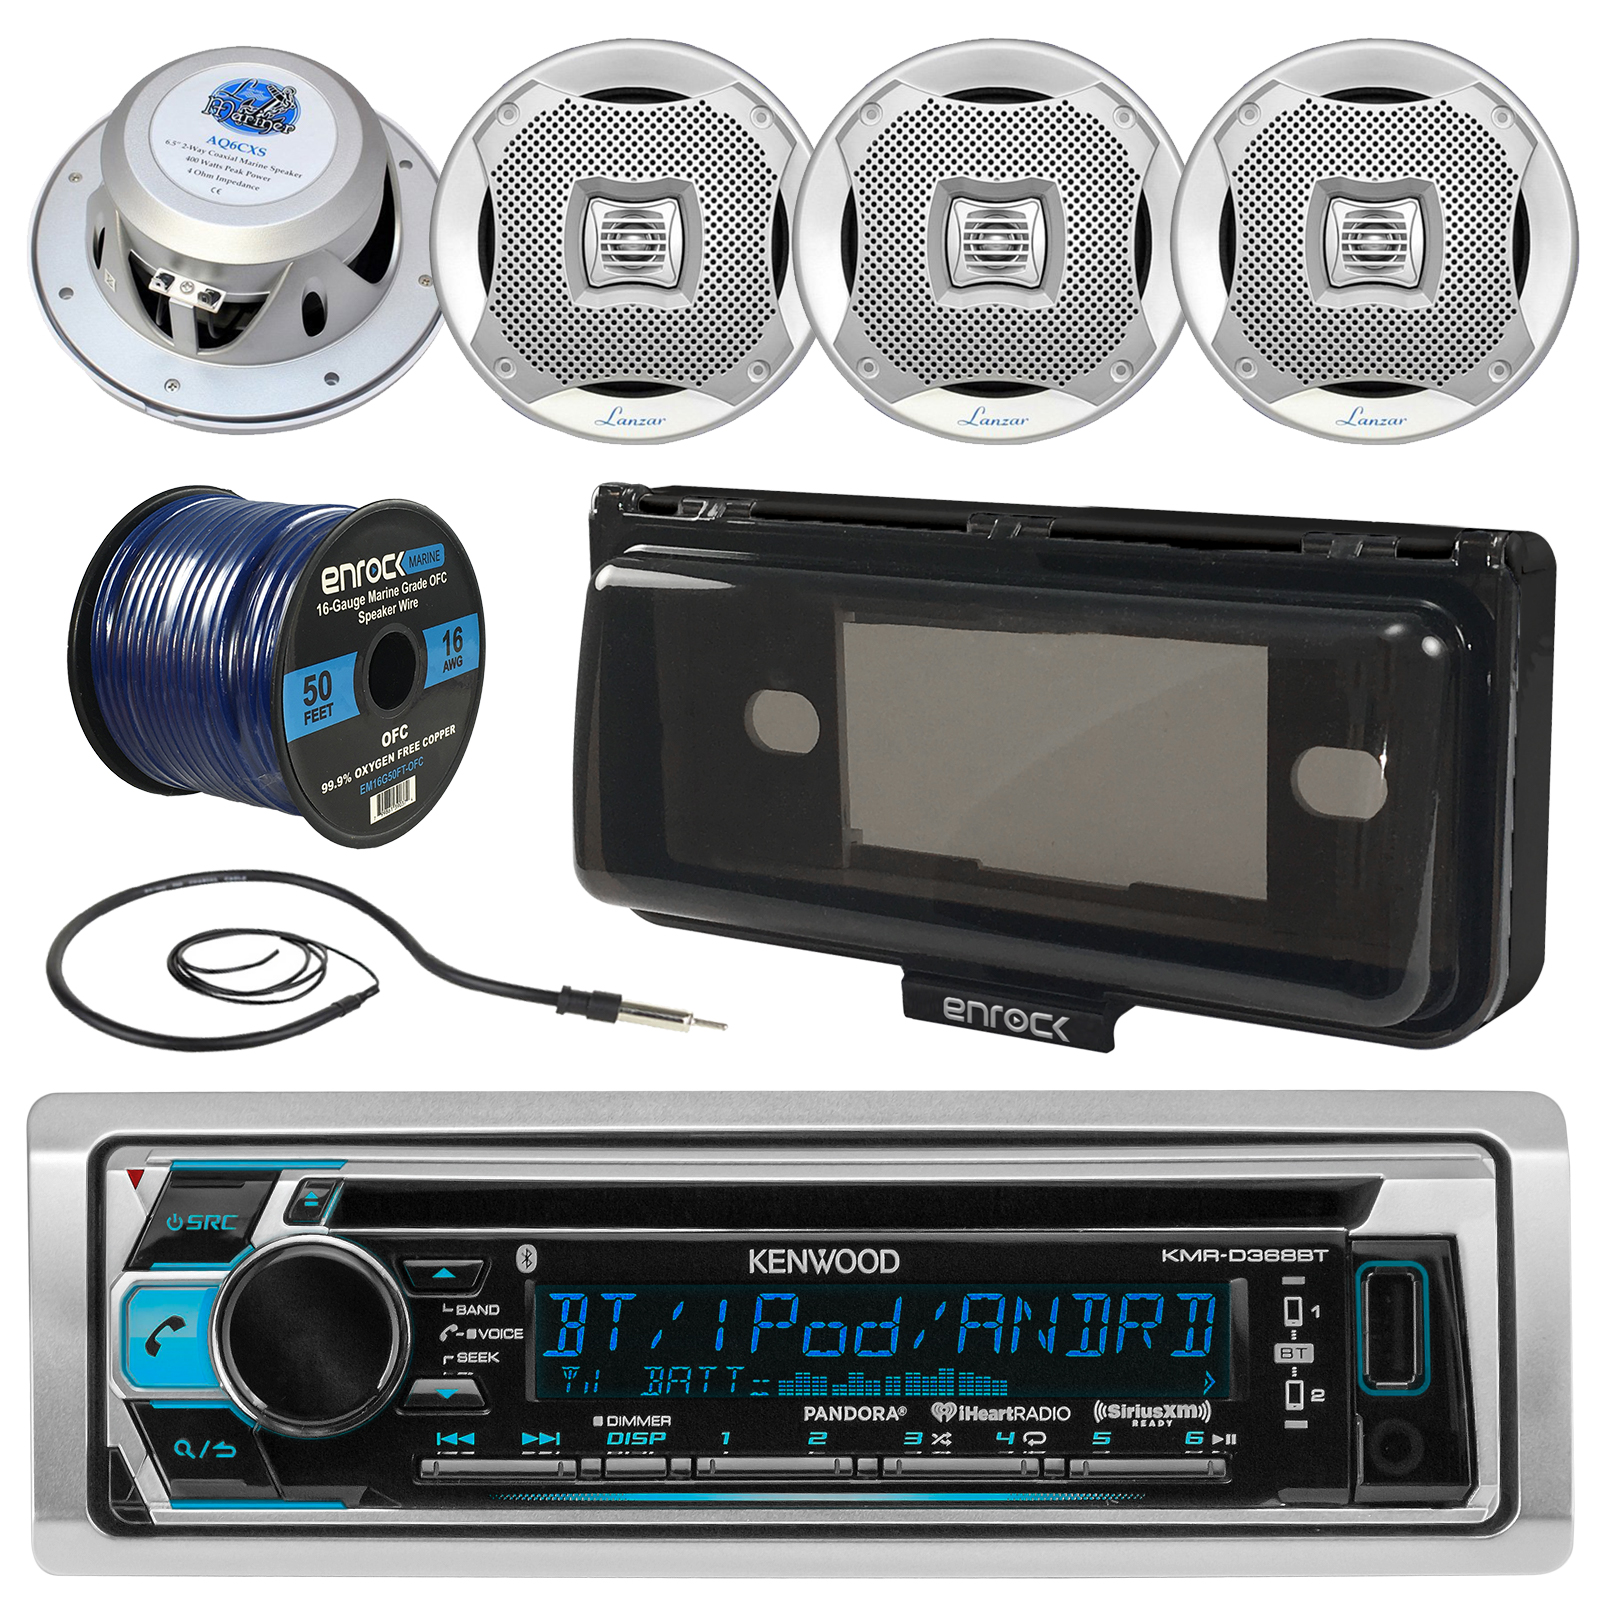 "Kenwood KMRD372BT In-Dash Marine Boat Audio Bluetooth CD Player Receiver W/ Waterproof Protective Cover Bundle Combo With 4x 400W 6.5"" Silver Coaxial Speakers + Radio Antenna + 16g 50FT Speaker Wire"